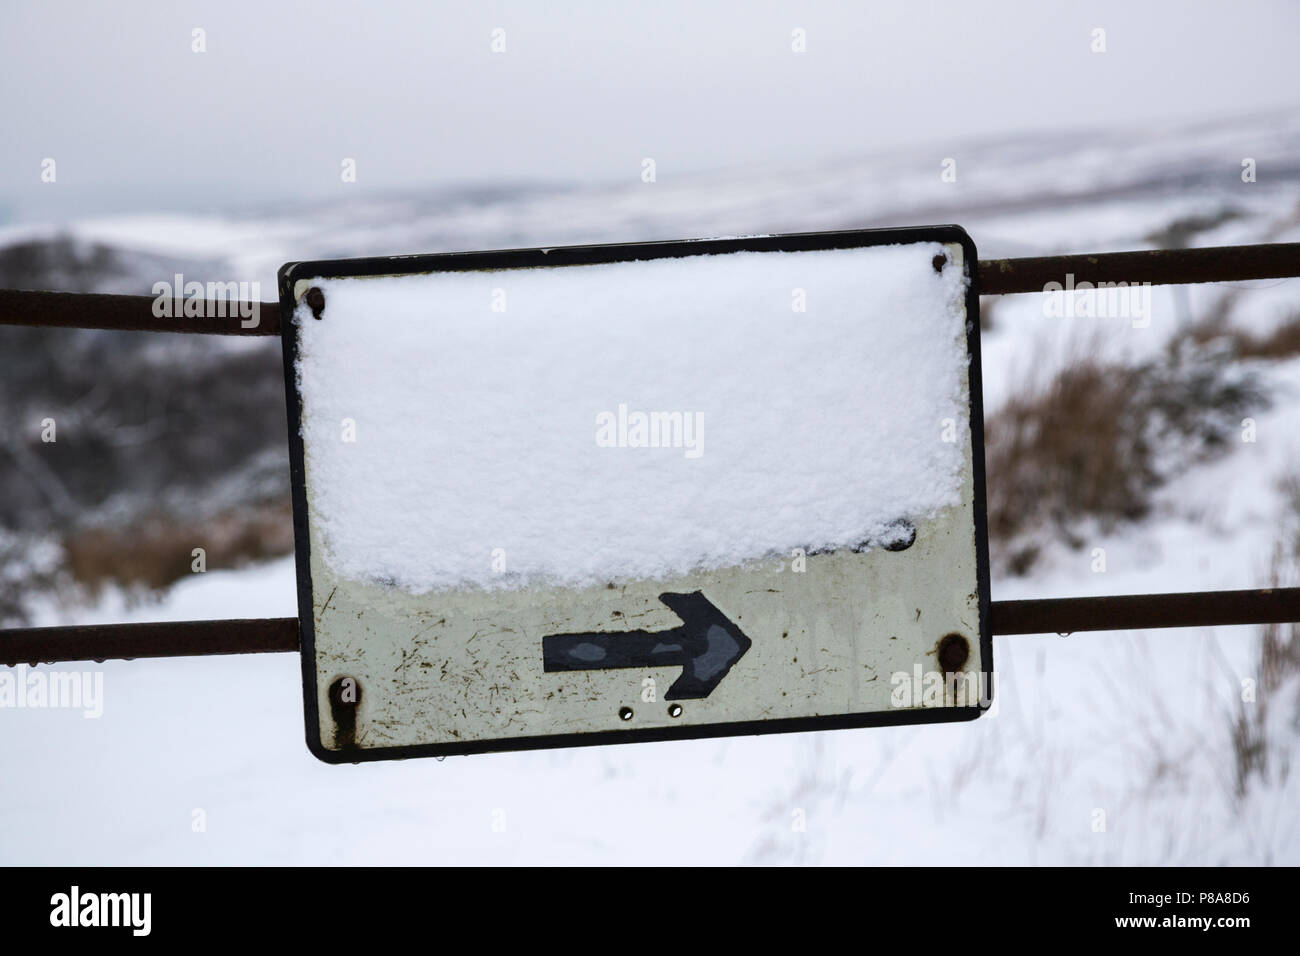 Snow covered road sign, Tarset, North Tyne valley, Northumberland National Park, UK - Stock Image